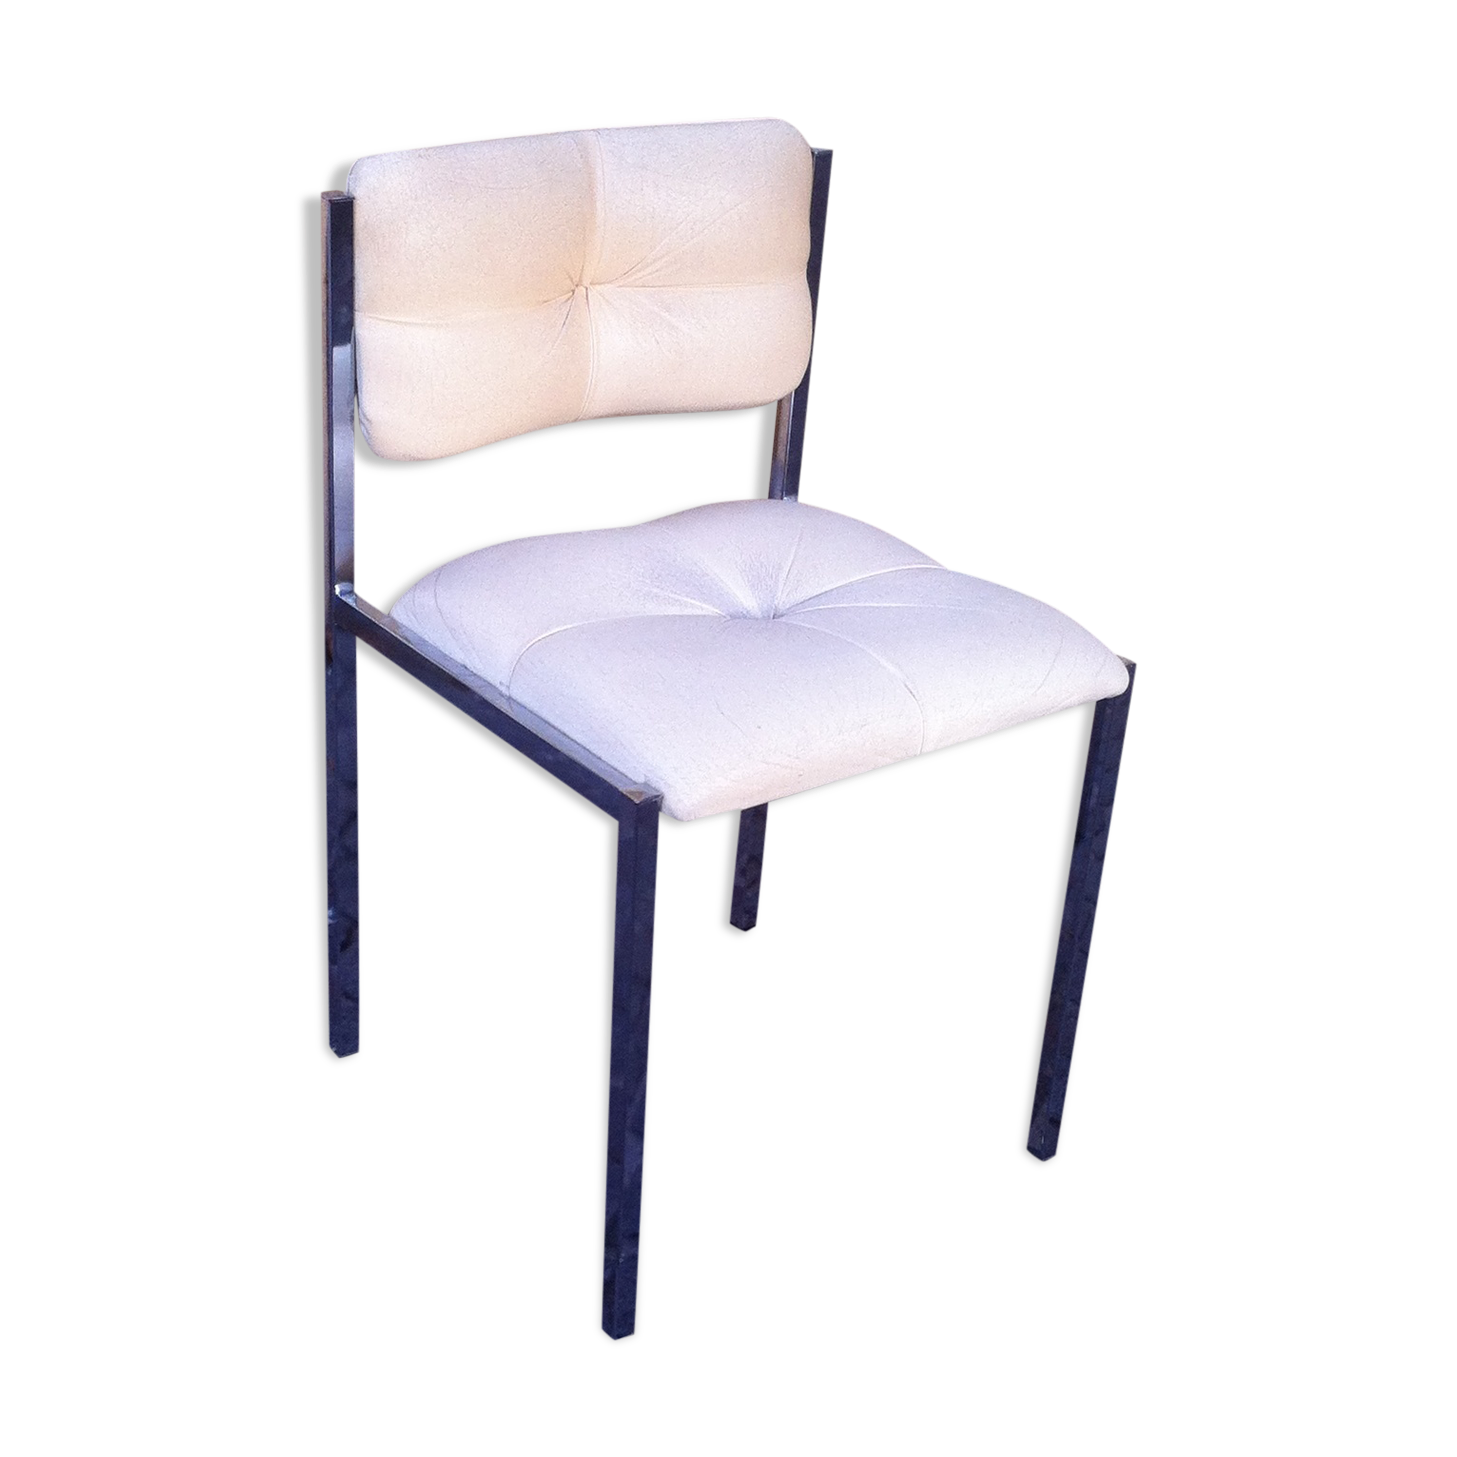 chaises en cuir blanc free chaise cuir blanc with chaises en cuir blanc full size of chaisela. Black Bedroom Furniture Sets. Home Design Ideas